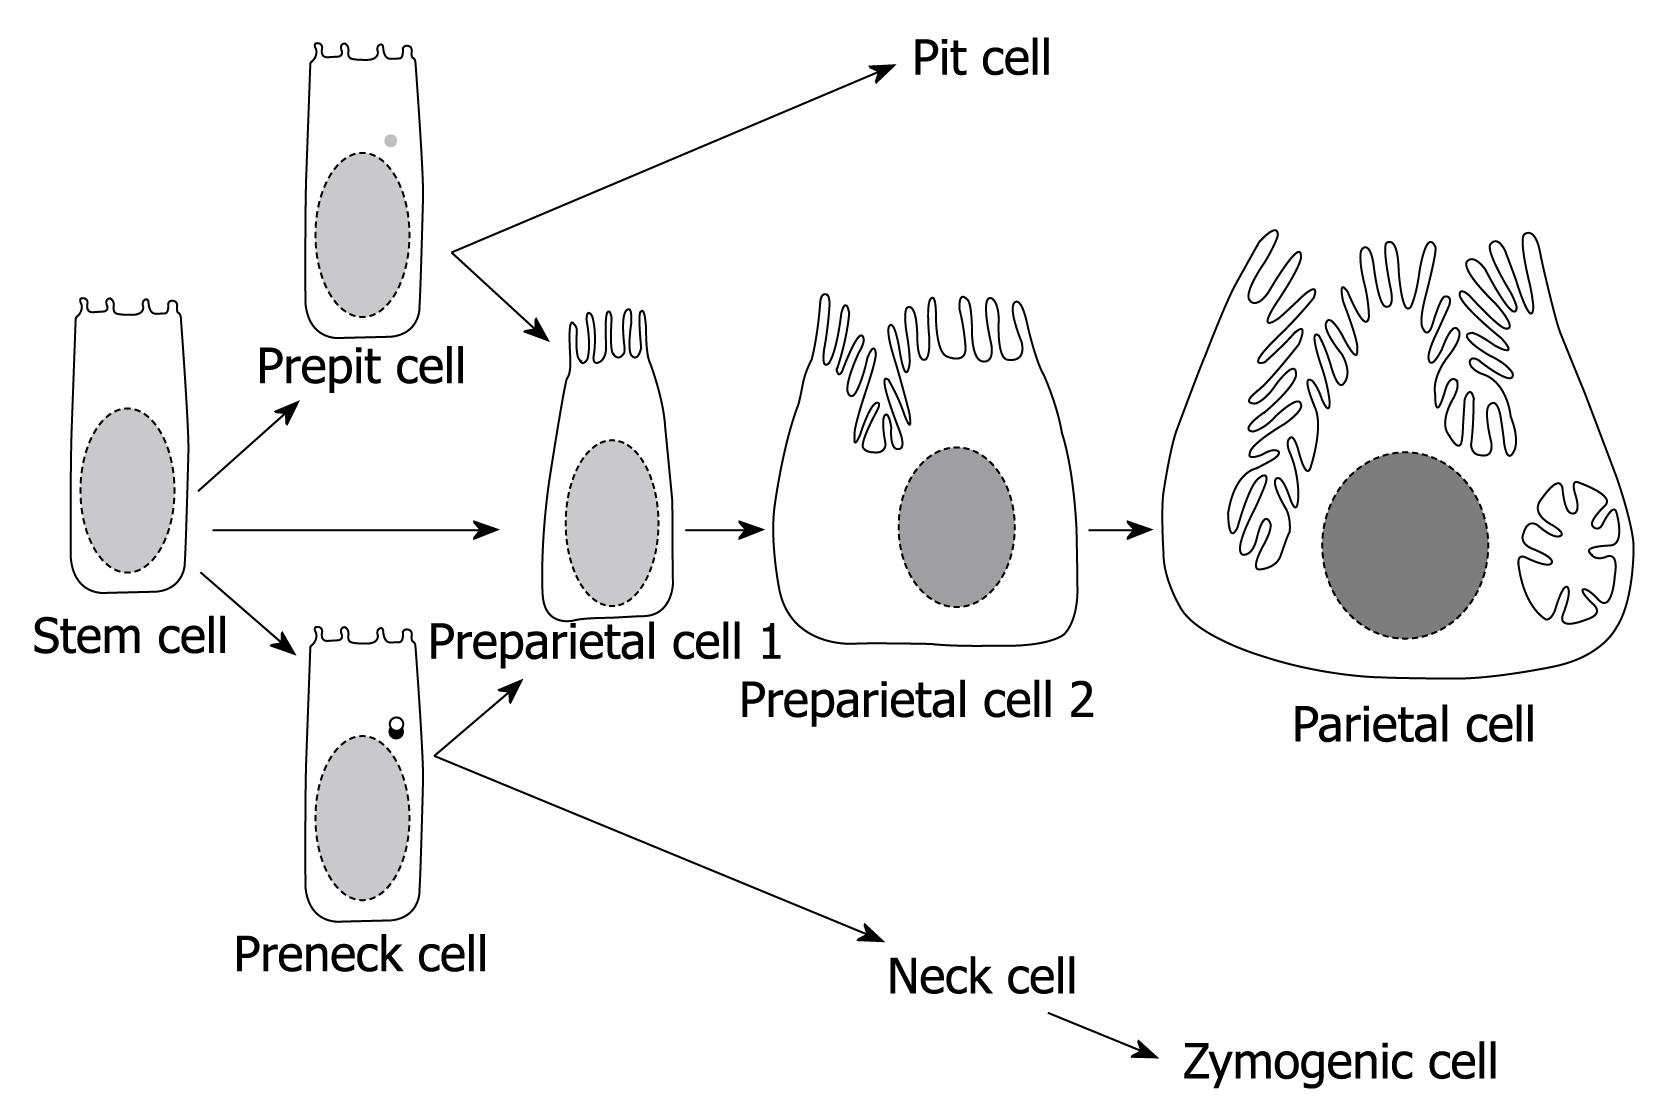 A Focus On Parietal Cells As A Renewing Cell Population